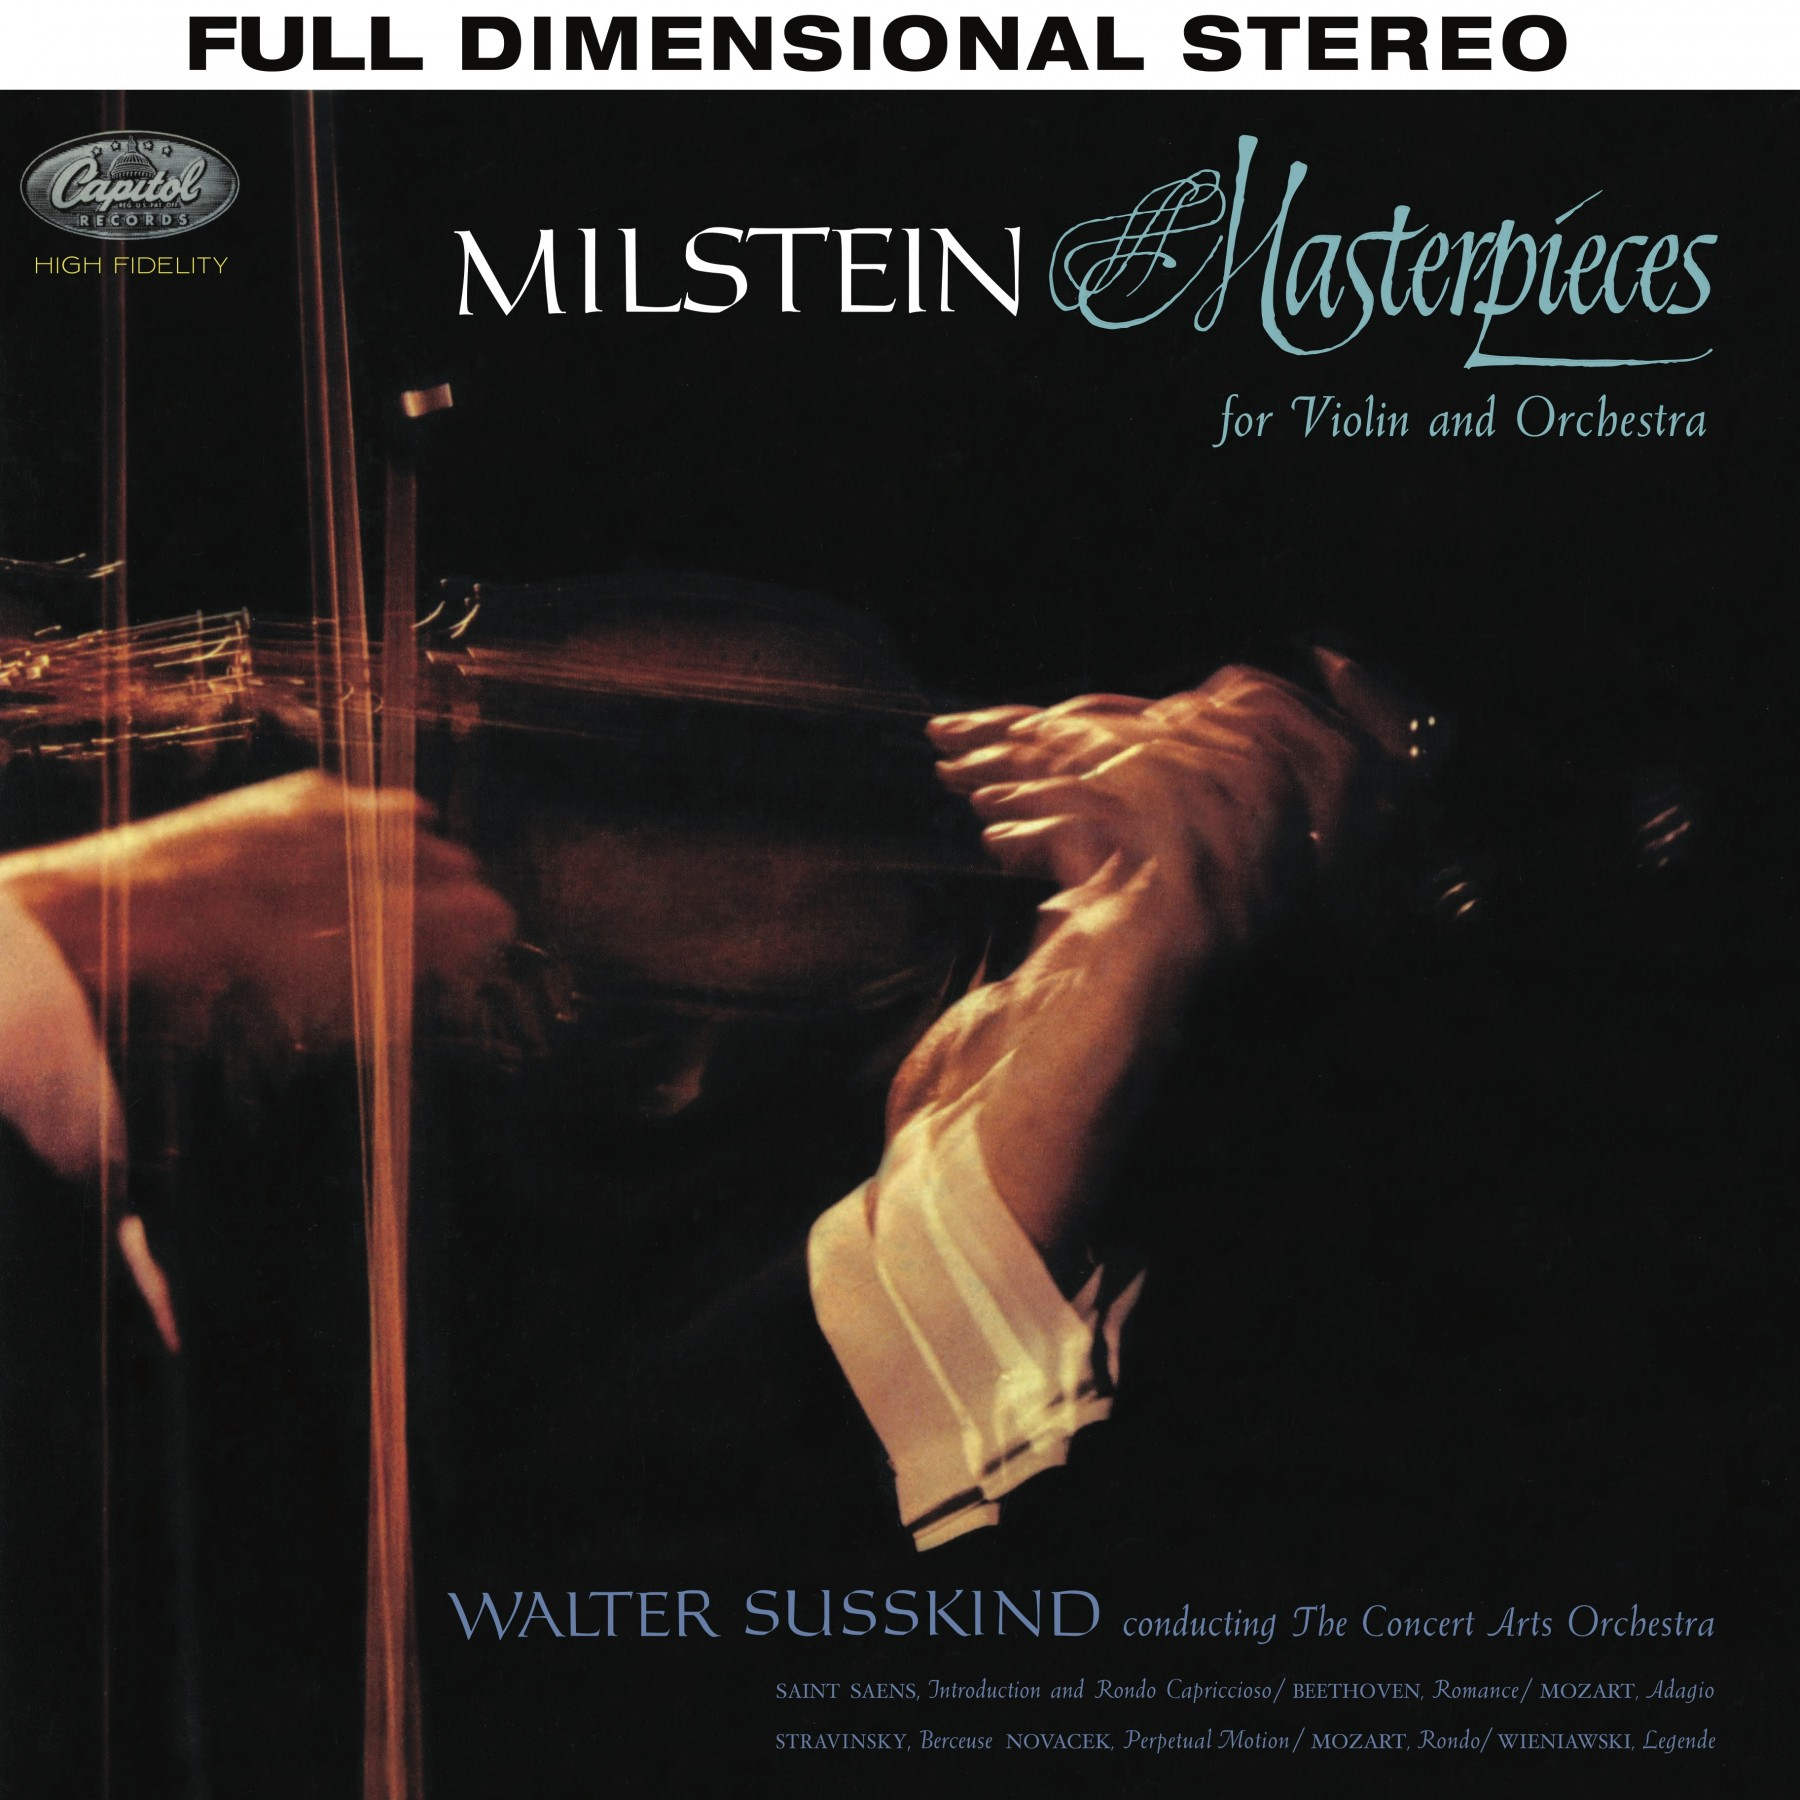 Nathan Milstein: Masterpieces for Violin and Orchestra - Analogue Productions Hybrid Stereo SACD (CA